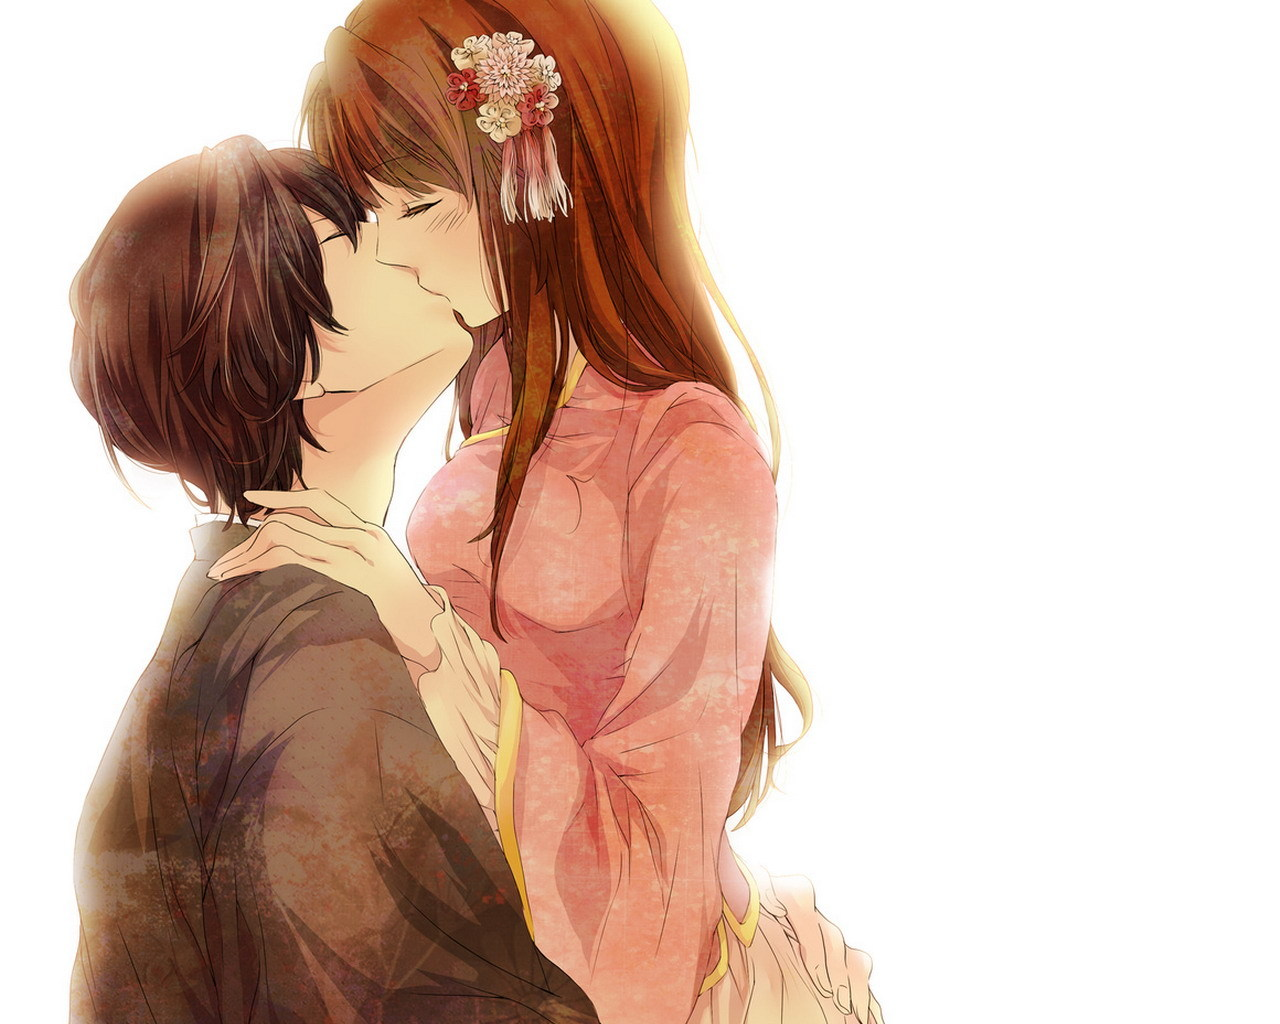 couple kissing wallpapers - photo #22